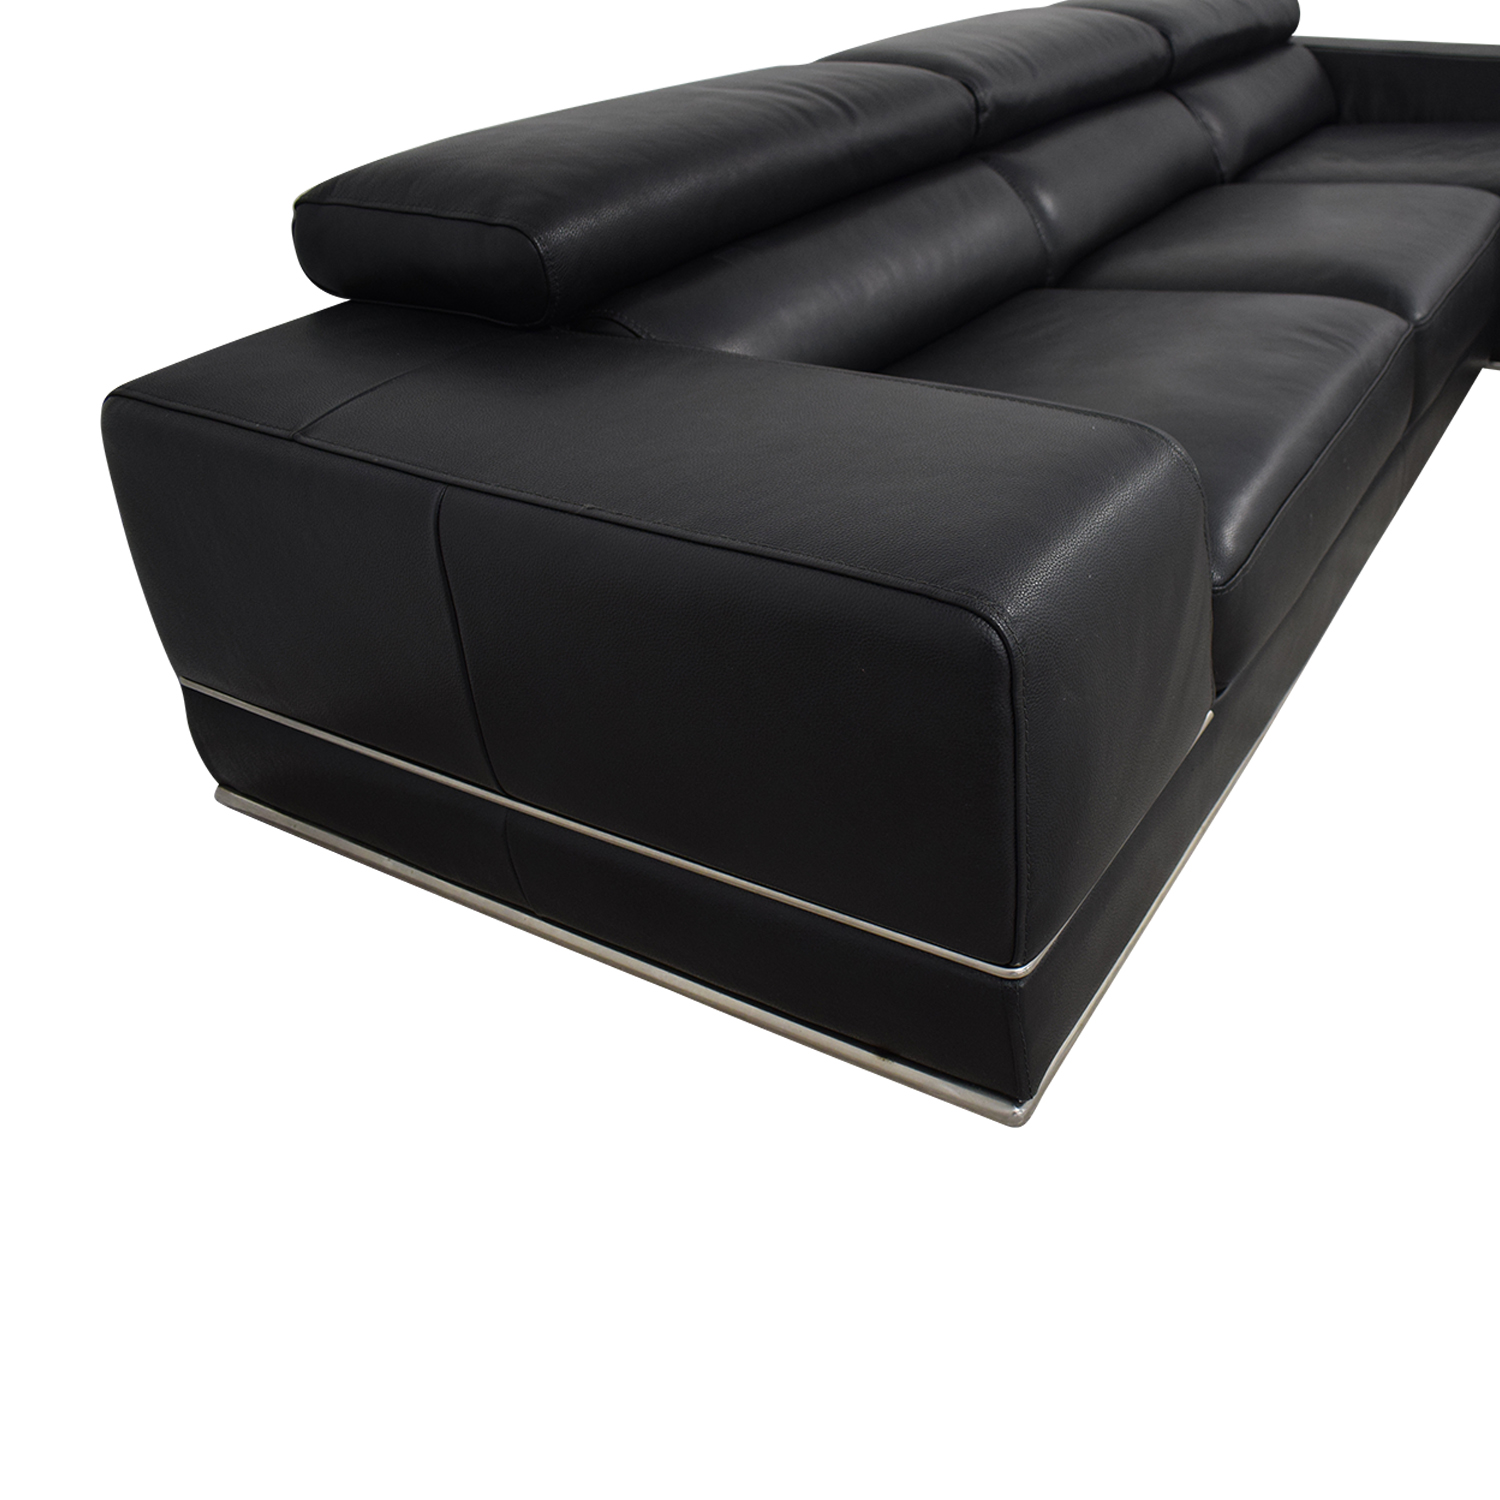 Admirable 72 Off Modani Modani Bergamo Right Sectional Sofa Sofas Uwap Interior Chair Design Uwaporg